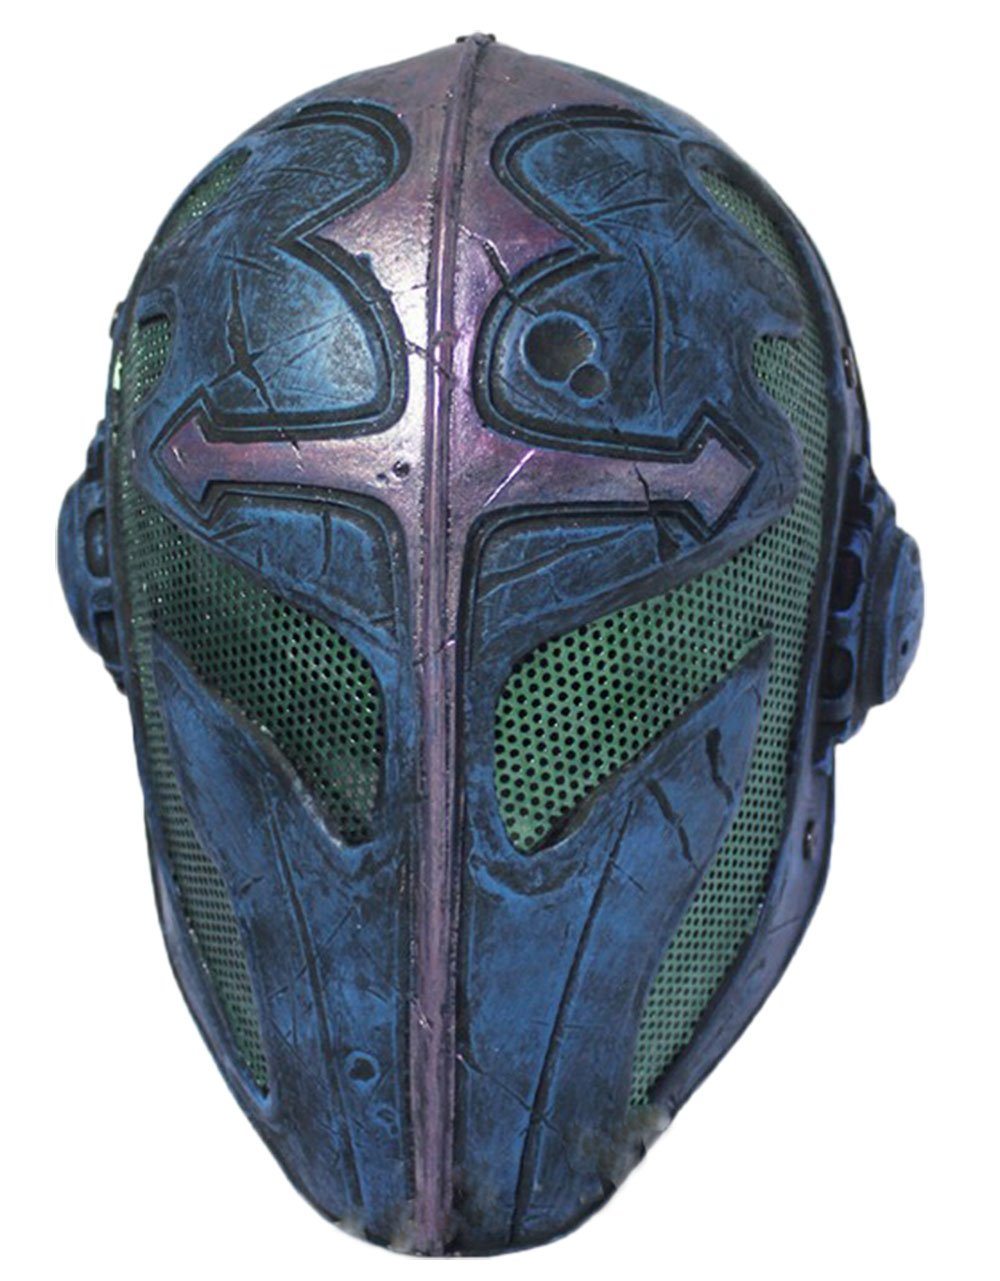 OSdream Glass Fiber + Resin Protective Mask for Airsoft Paintball Display/CS Protection (Blue) by OSdream